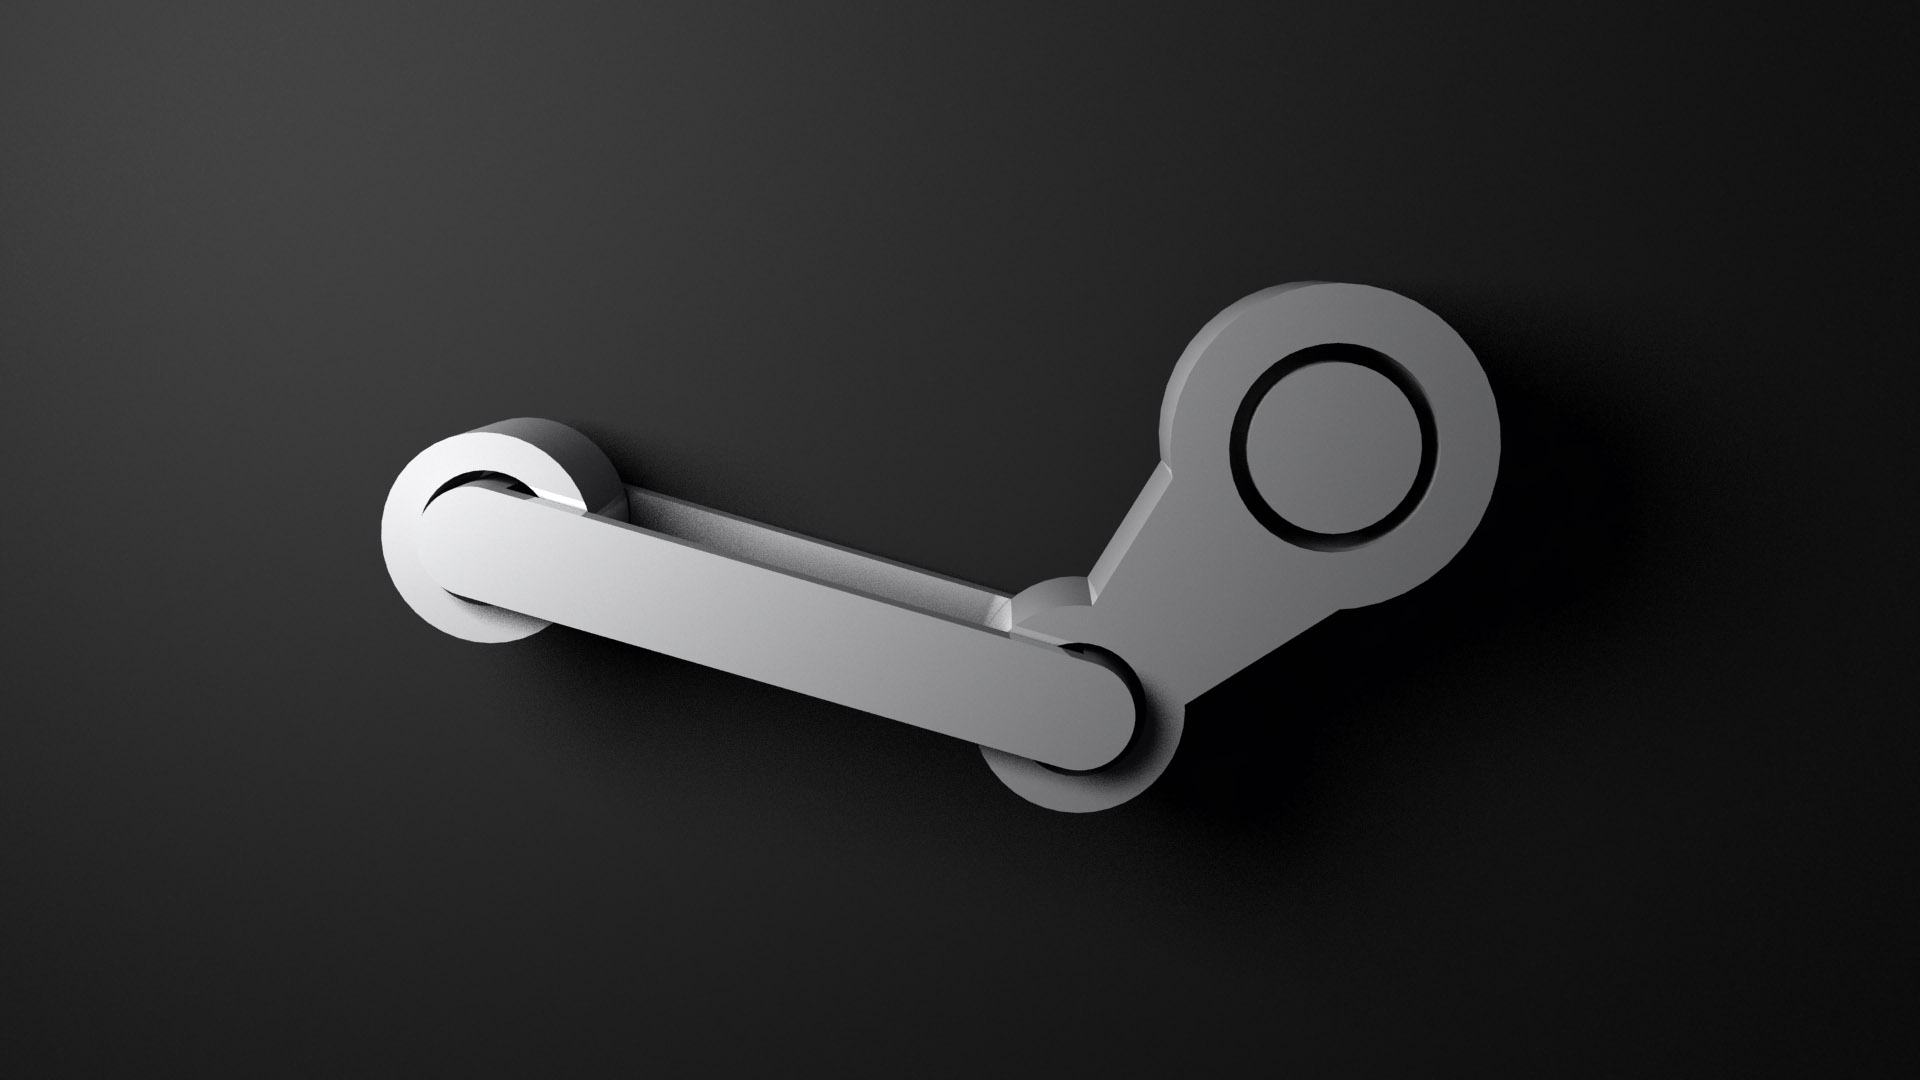 How To Find Your Steam Trade Link